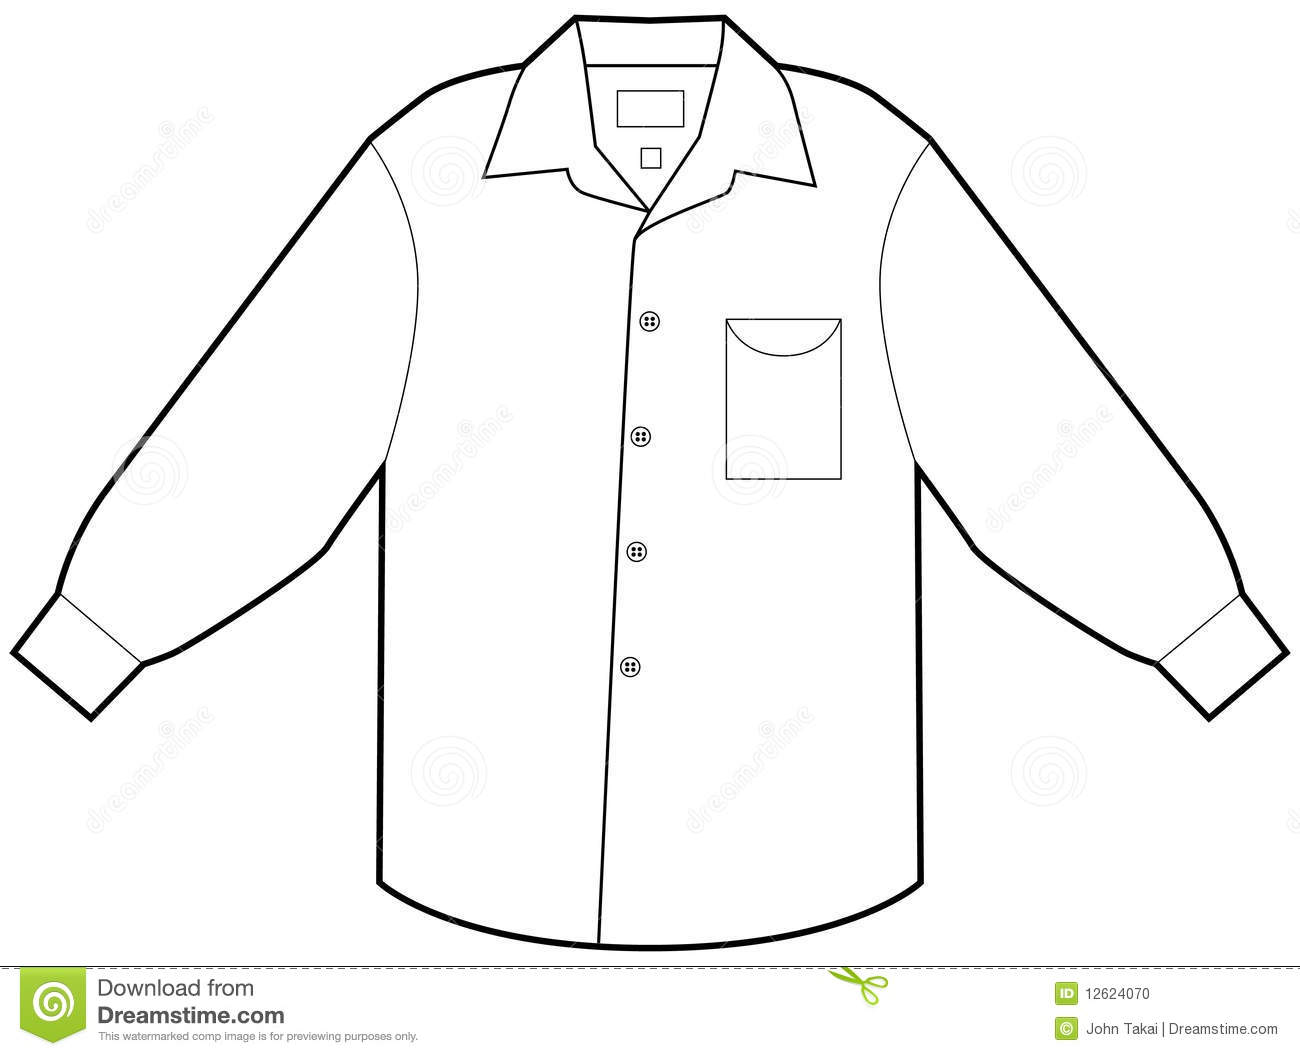 Business dress shirt isolated on a white background.